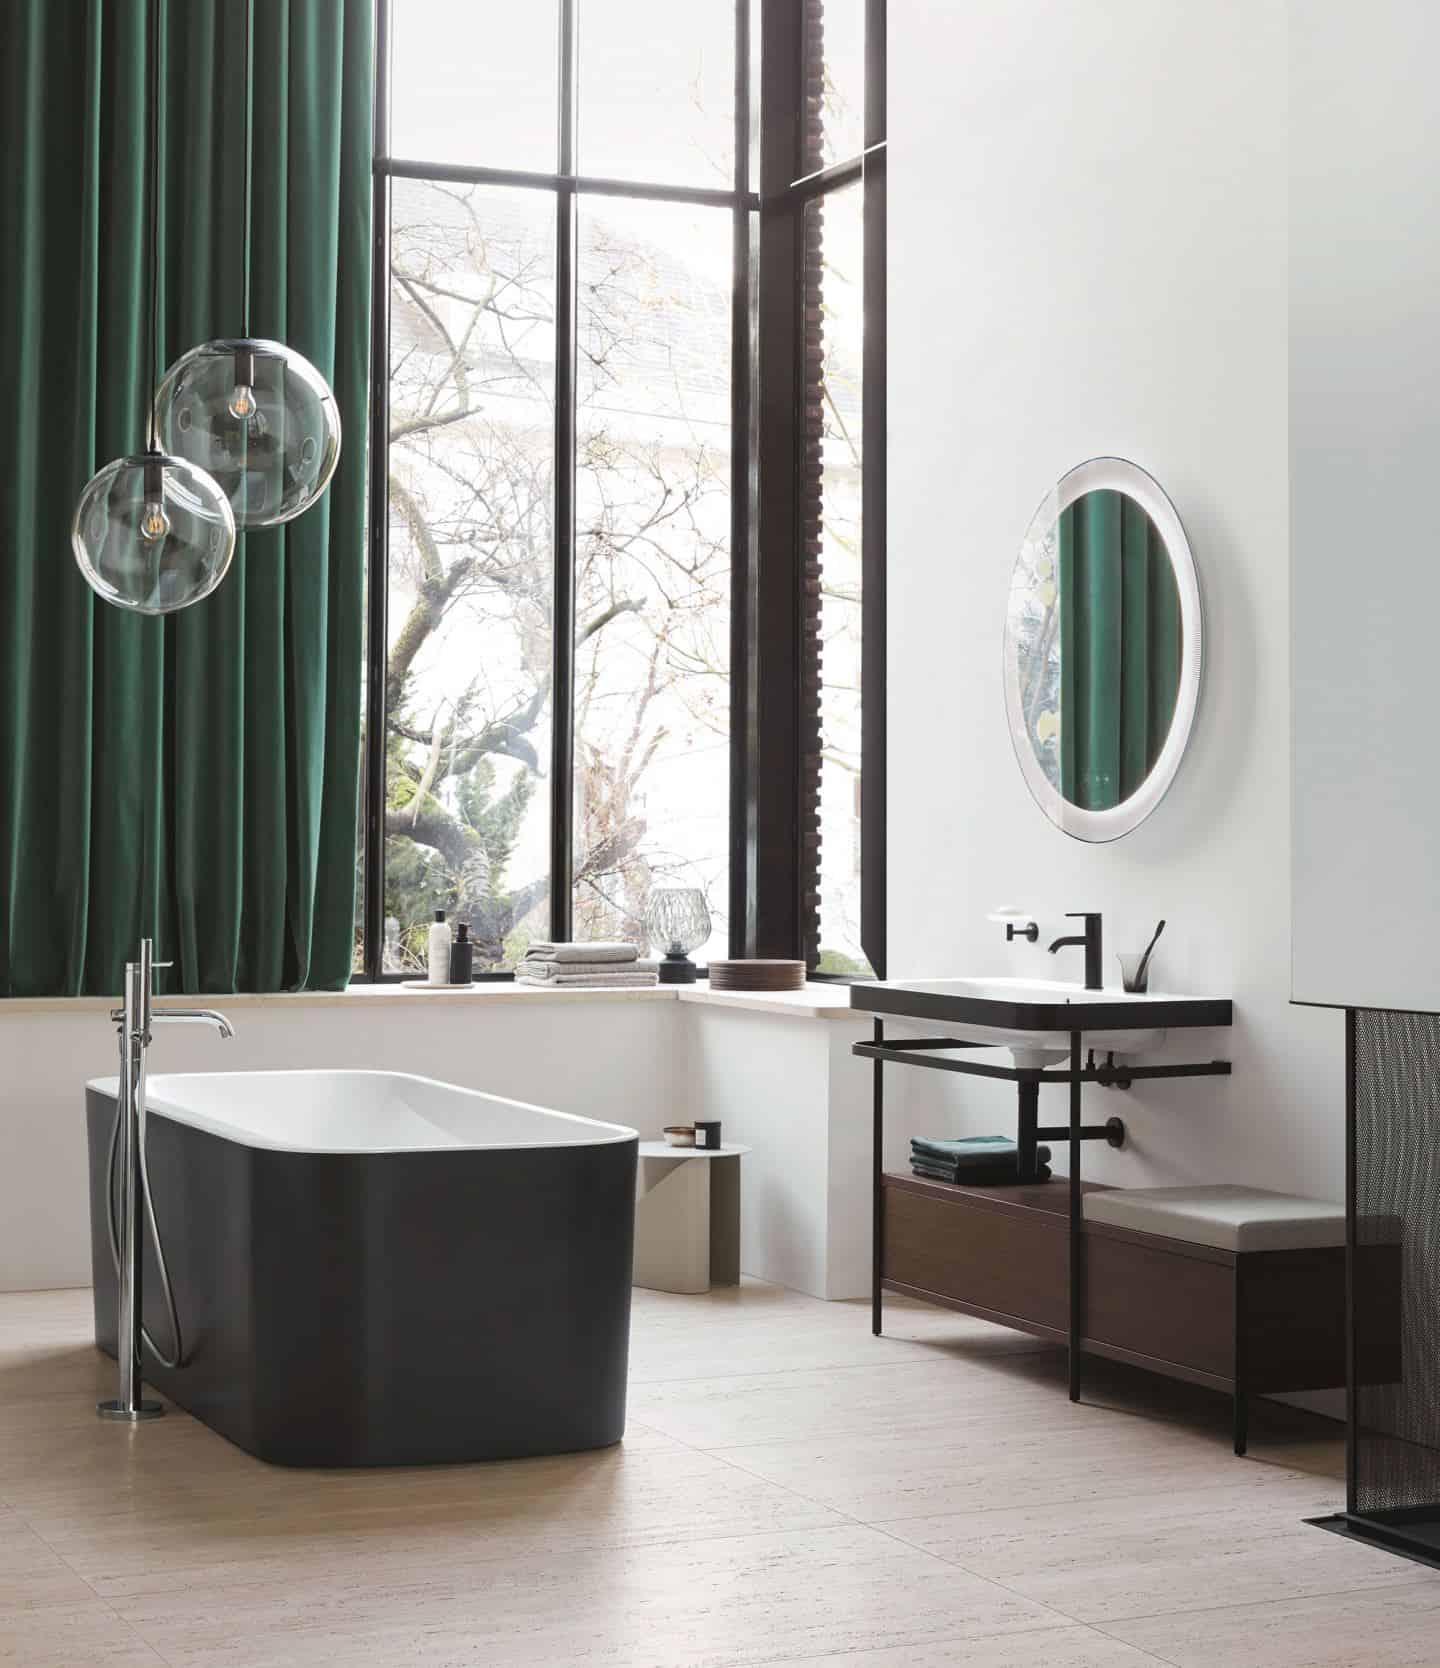 Duravit Happy D.2 Plus C-Shaped bathroom range. Free-standing bathtub with matt black exterior and sink console with a seat and extra storage.